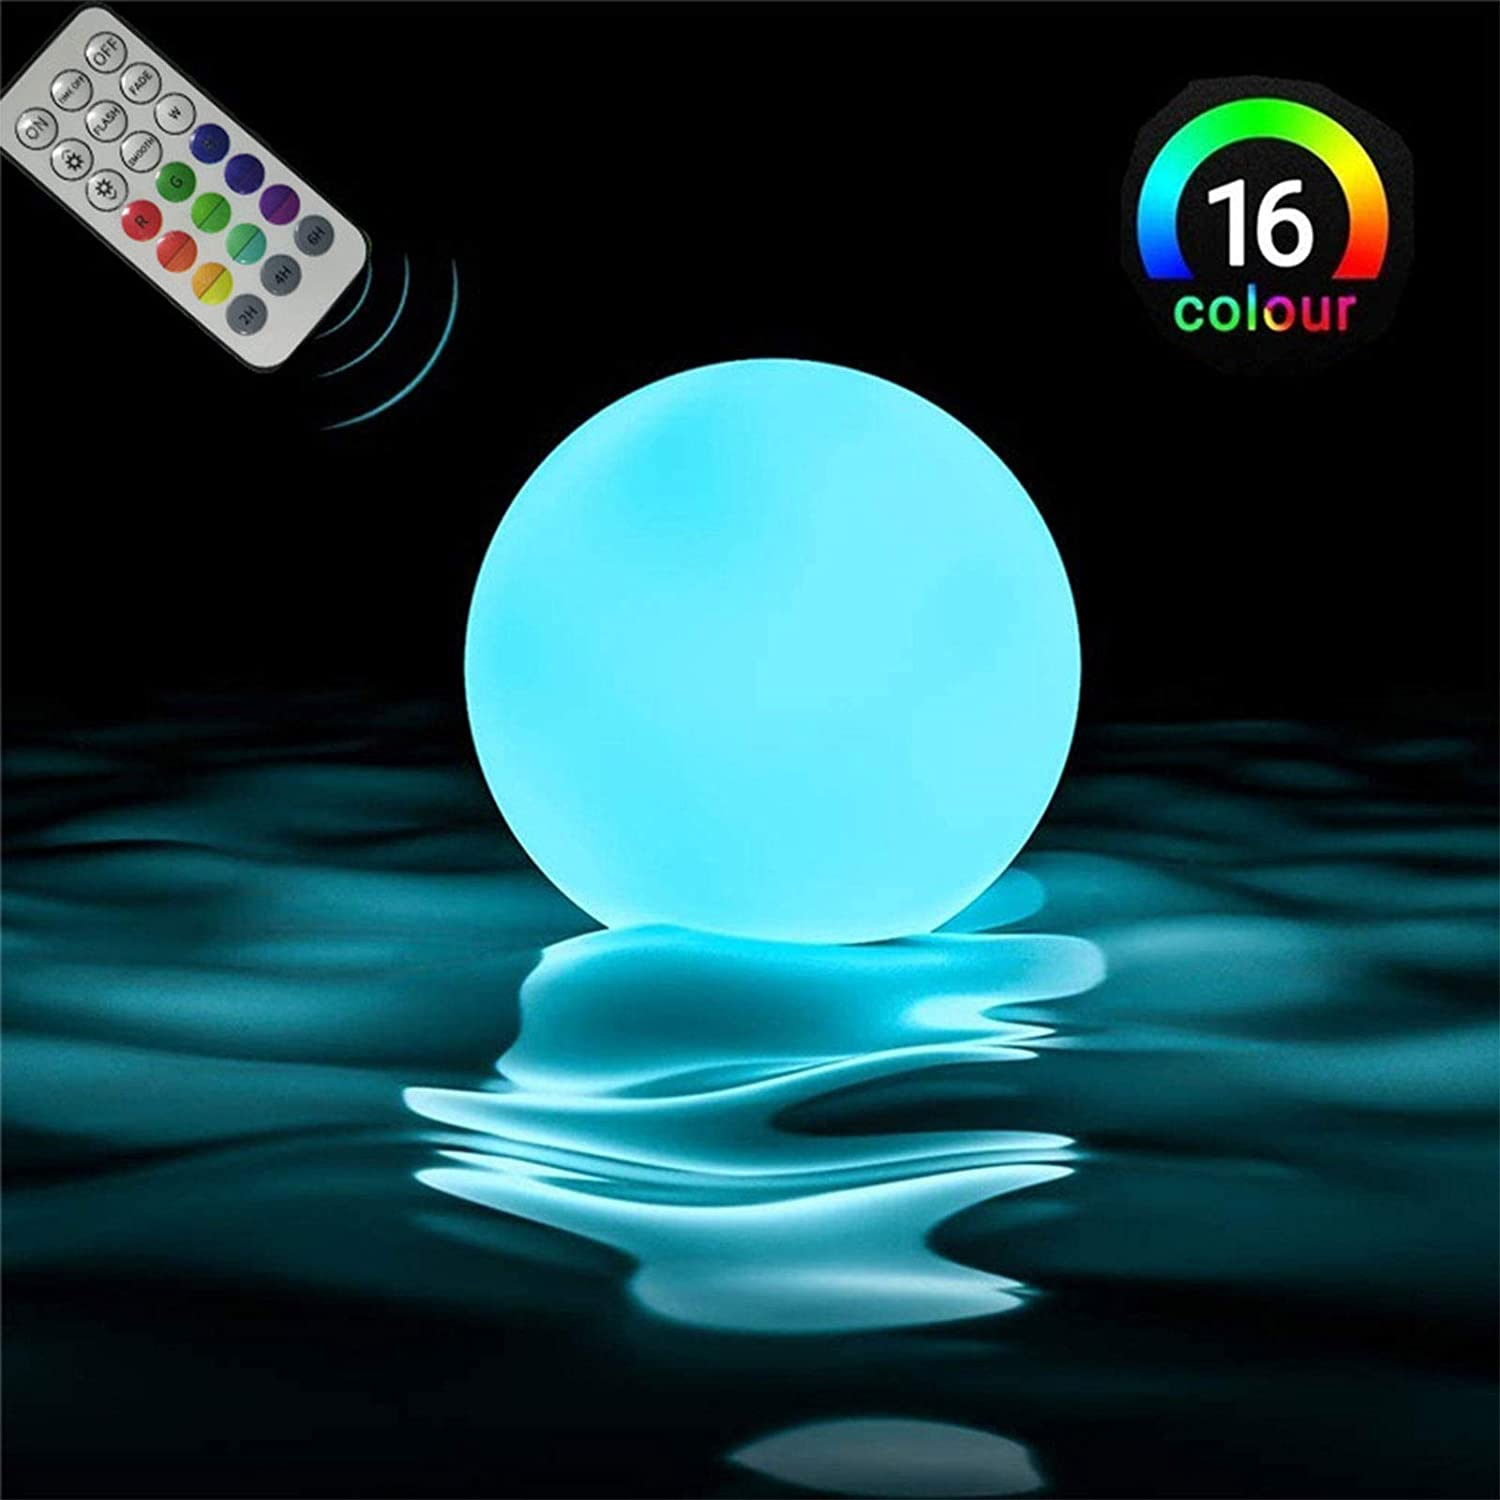 Waterproof Cordless Hot Tub Led Kids Night Light Ball Lamp for Above Ground Pool Garden Backyard Lawn Beach Party Decor Floating Pool Lights 12 Packs with Remote Control /& Timer 12 Packs